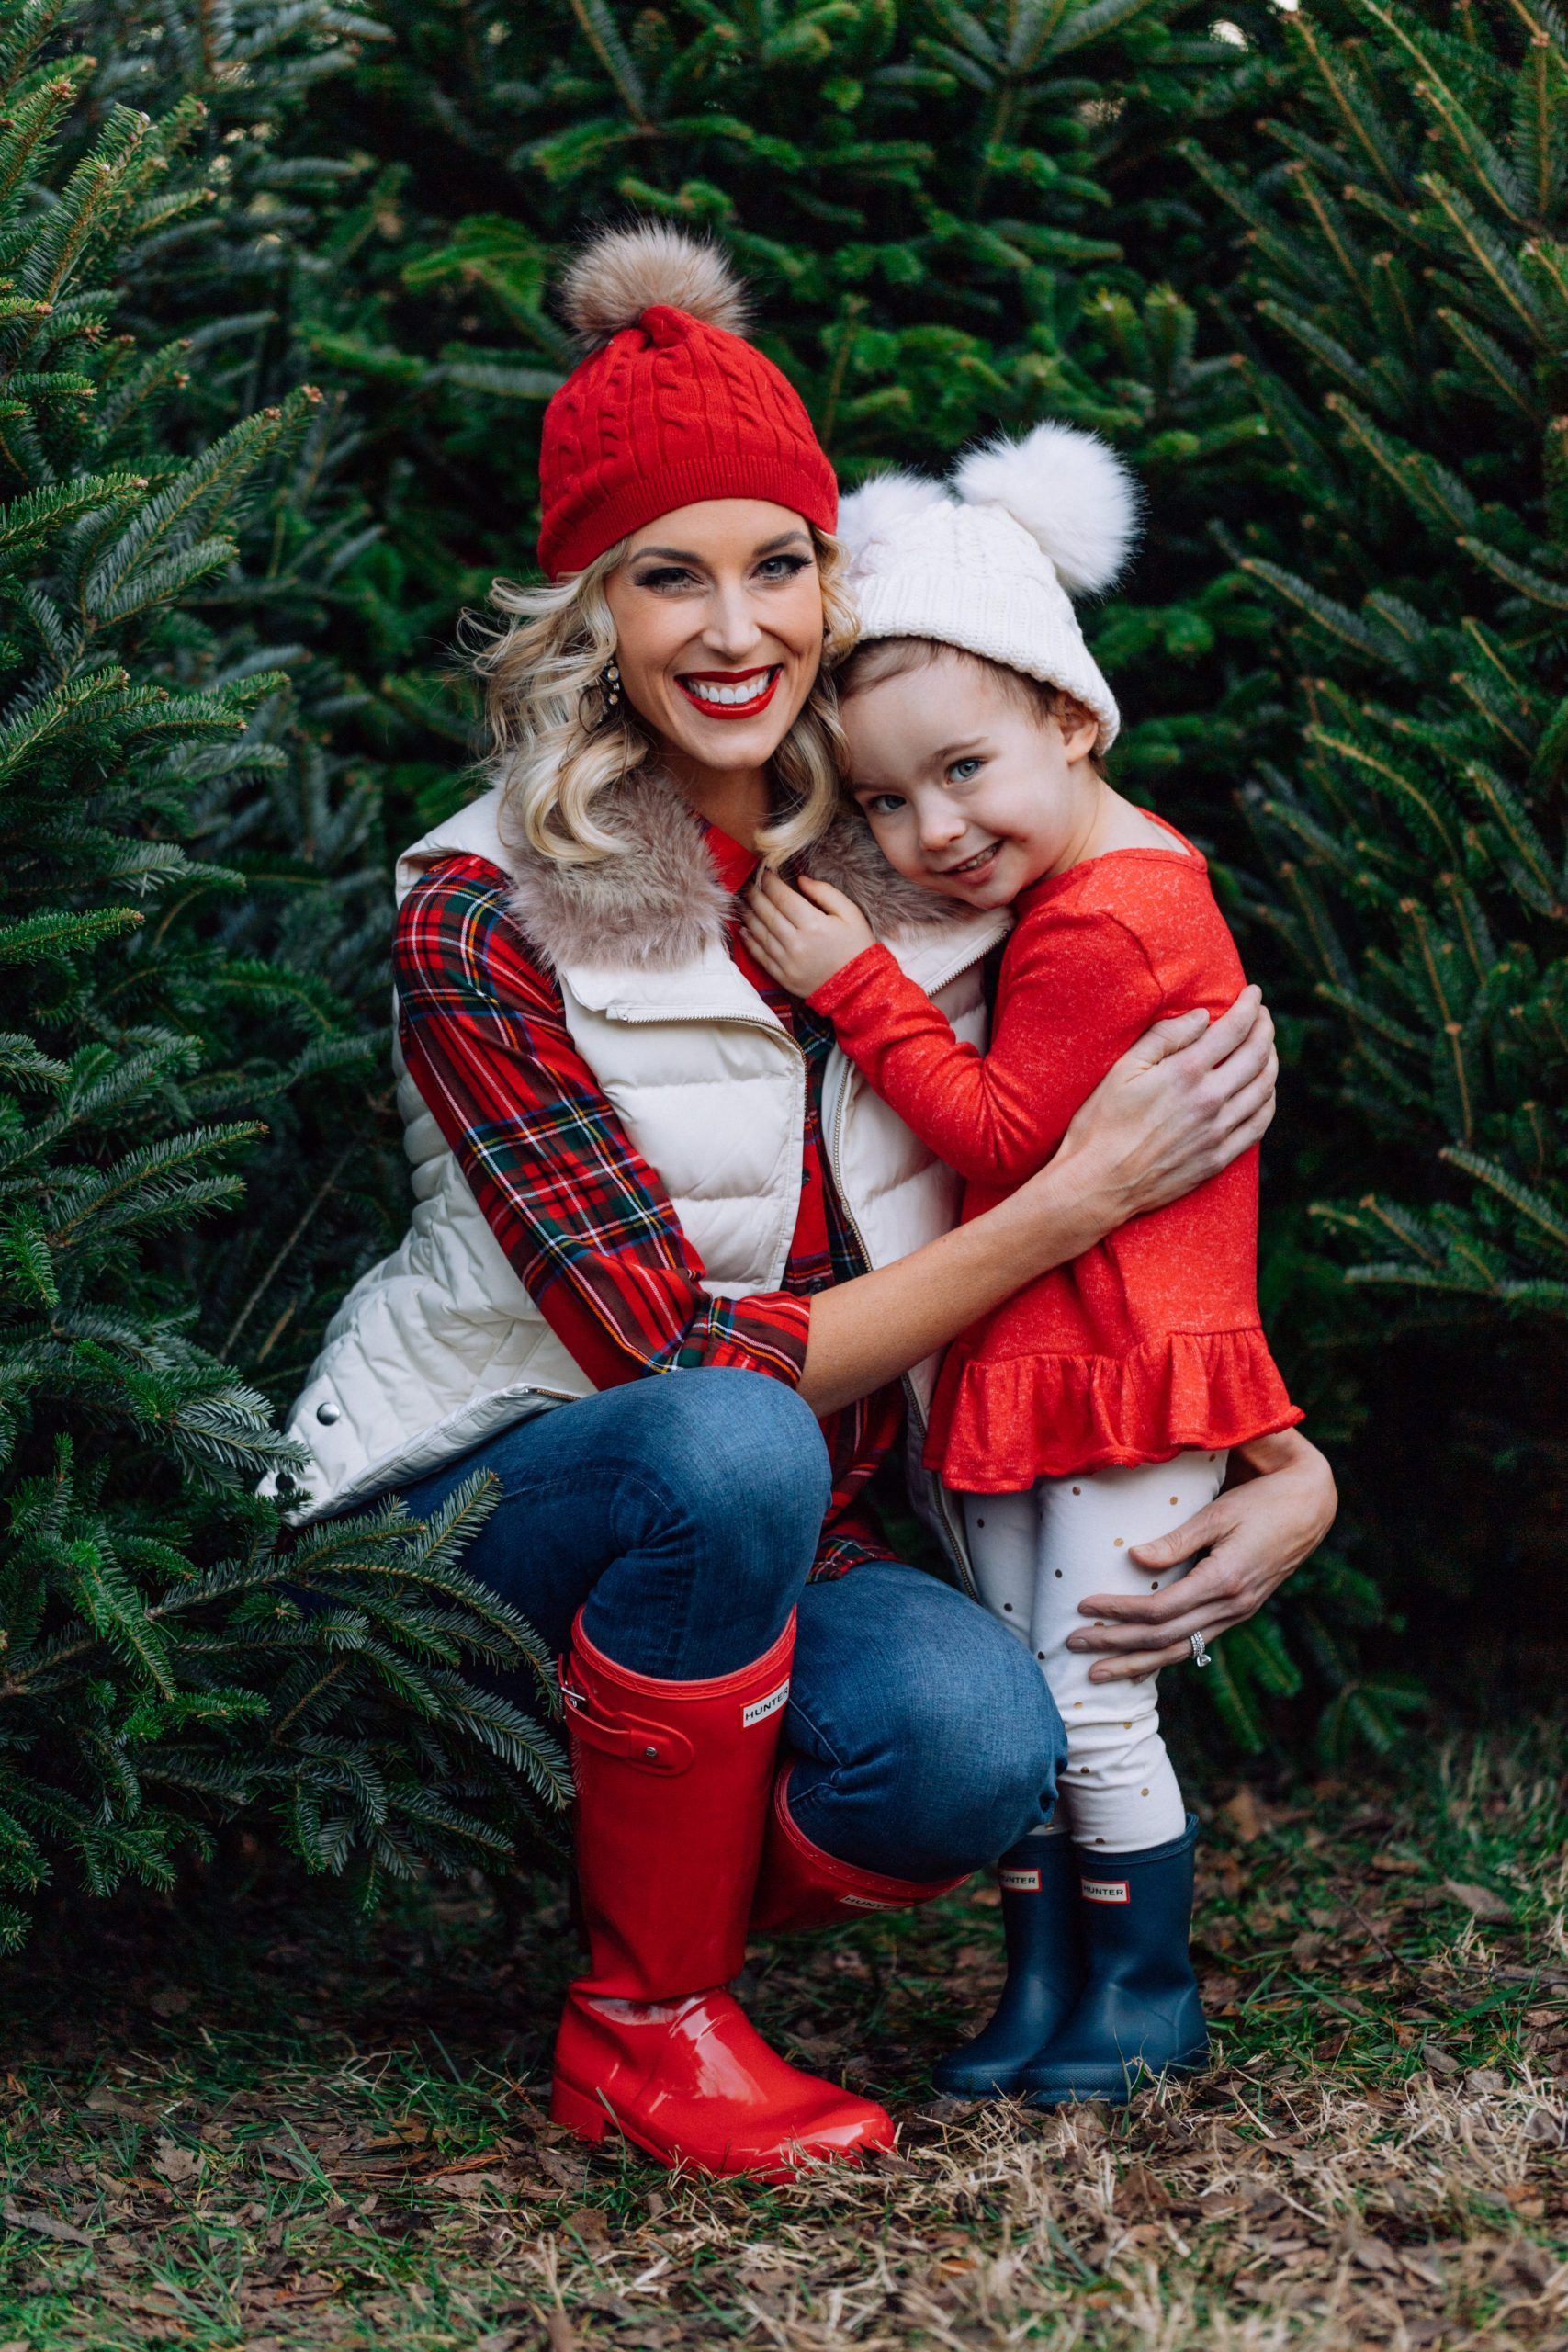 What To Wear For Family Christmas Tree Farm Photos Straight A Style Christmas Tree Farm Christmas Tree Farm Photos Family Christmas Outfits